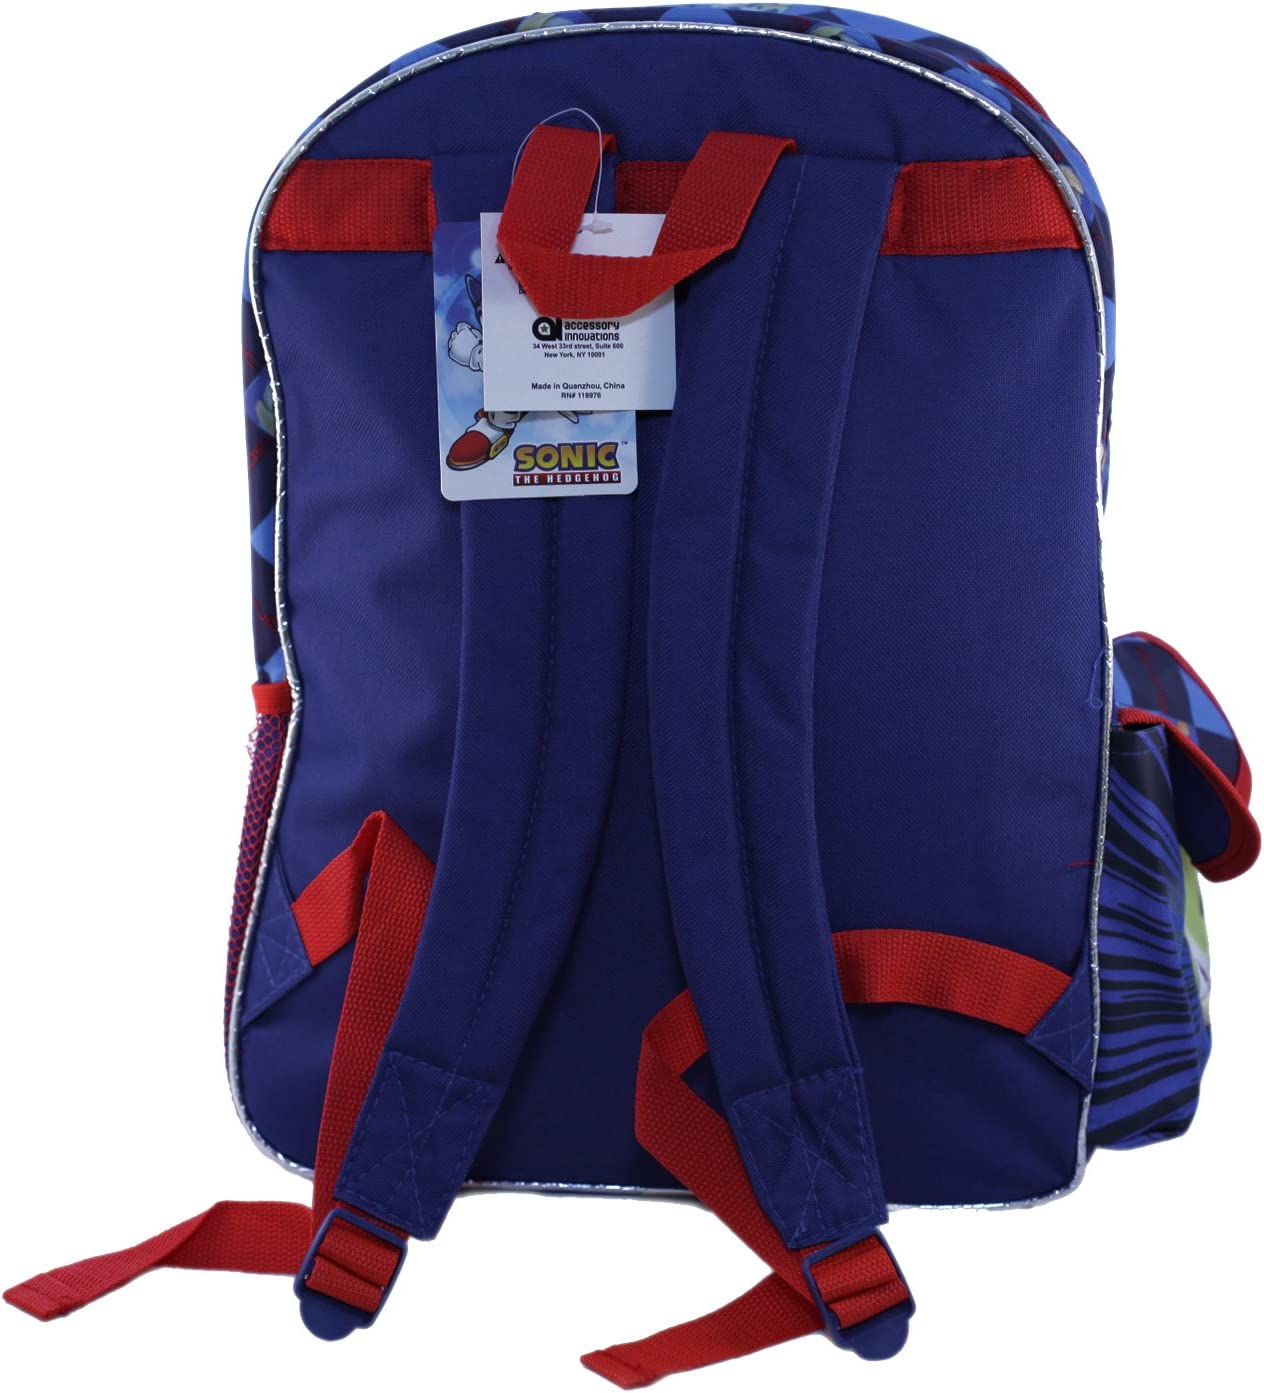 bc26d939eb8f Amazon.com  Accessory Innovations Sonic and Friends Backpack Bag - Not  Machine Specific  Video Games